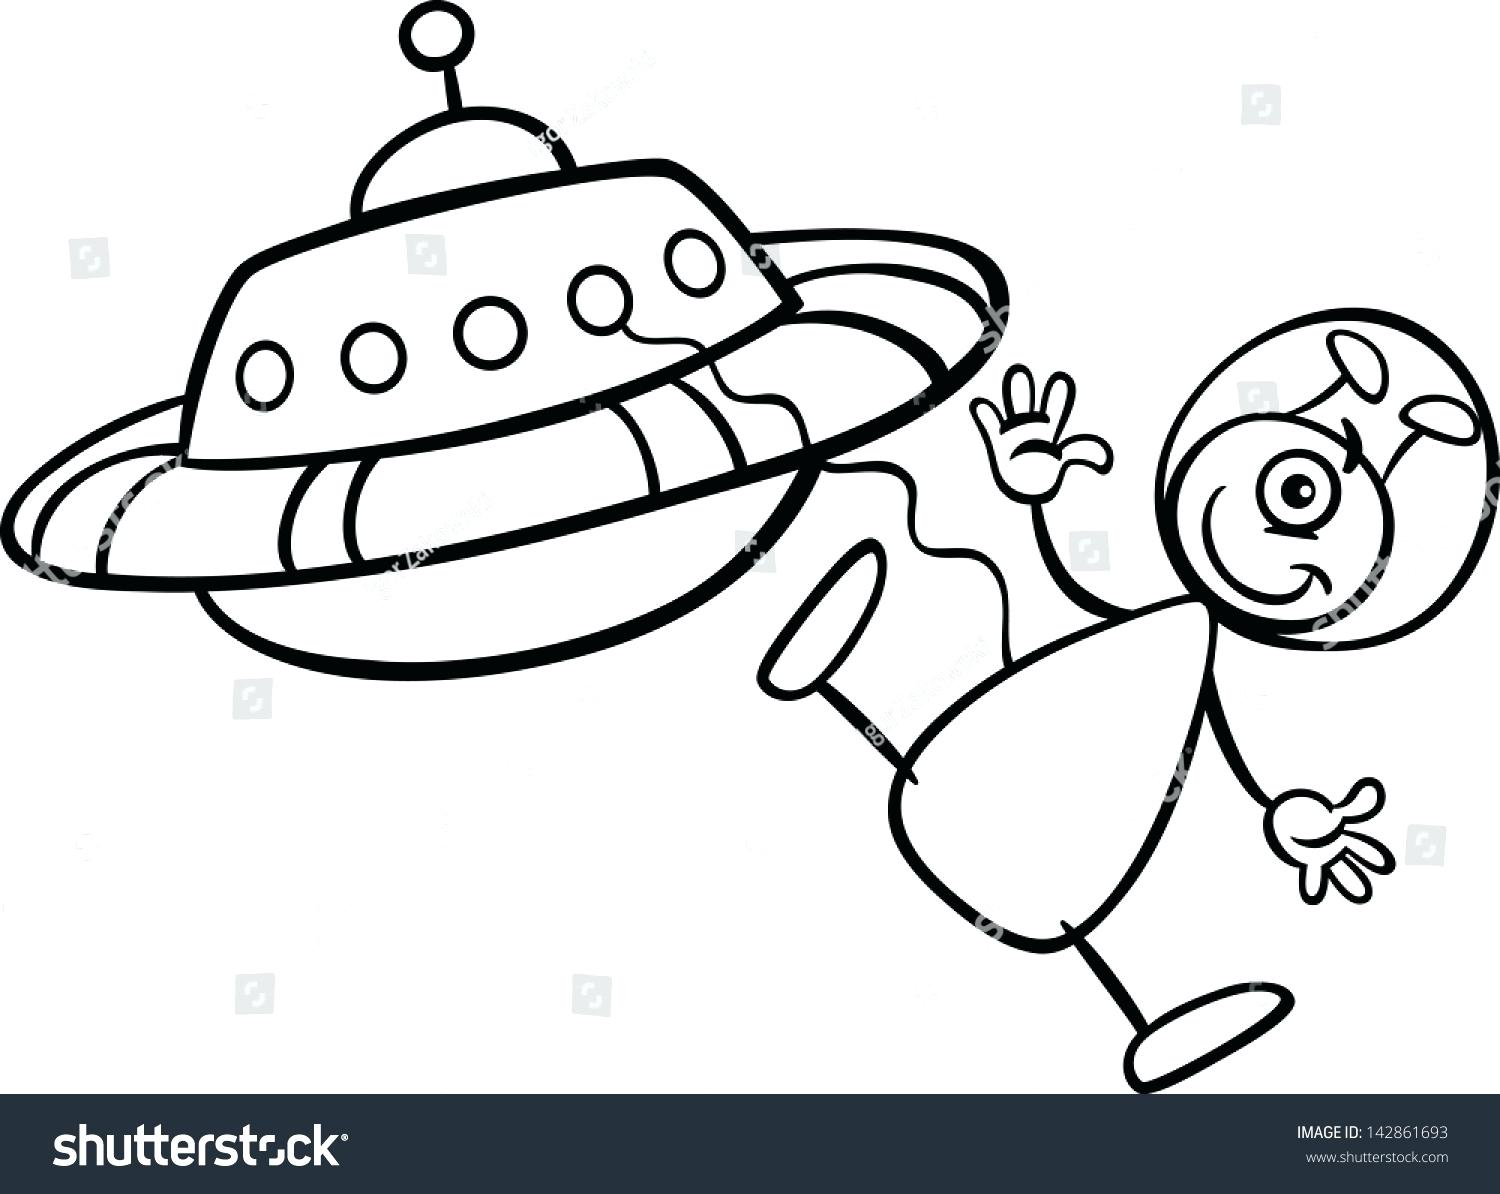 1500x1194 Star Wars Spaceship Colouring Pages Space Ship Coloring Page Many